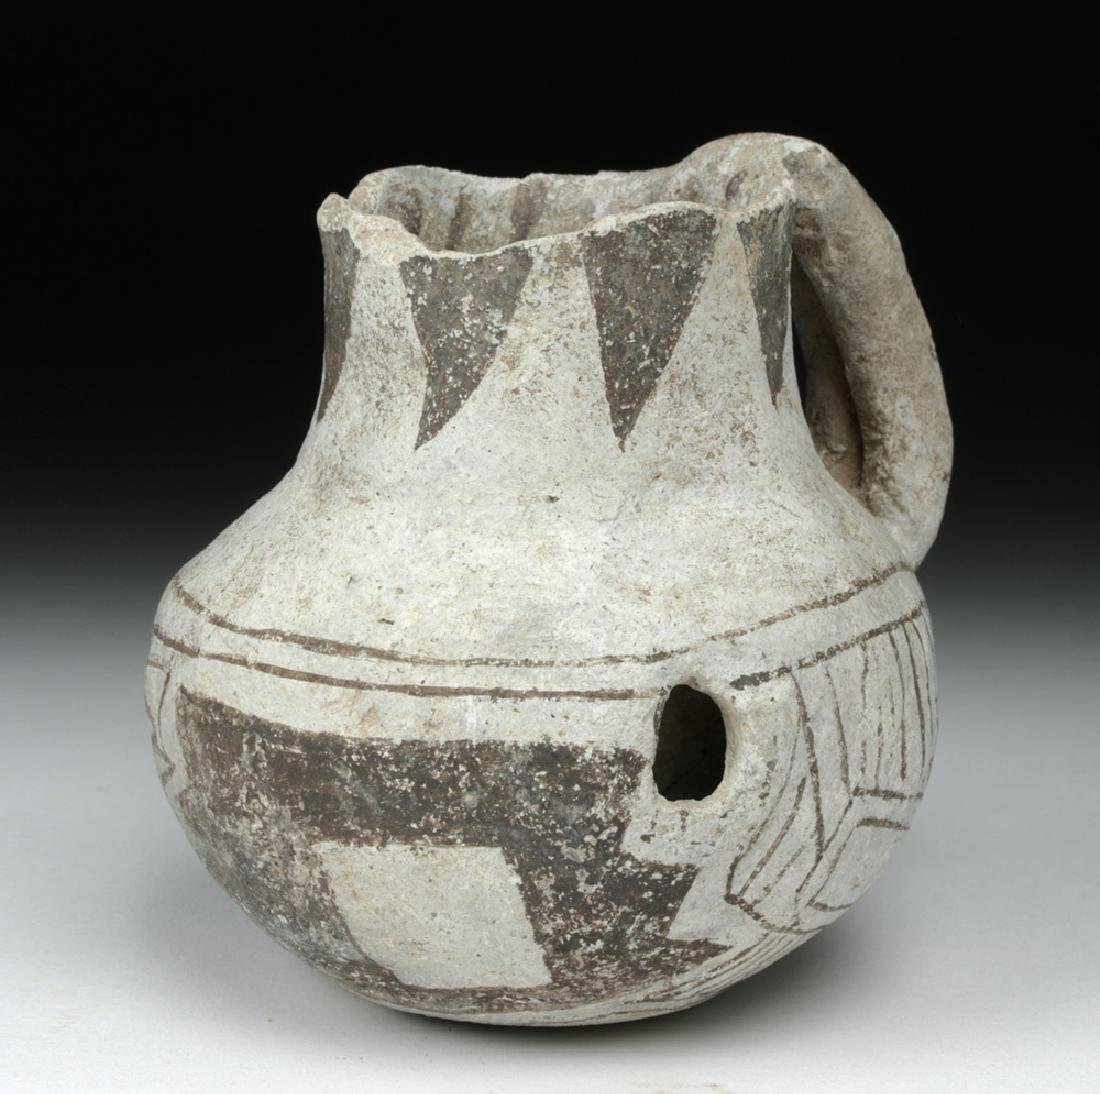 Anasazi Black on White Pottery Dribble Mug